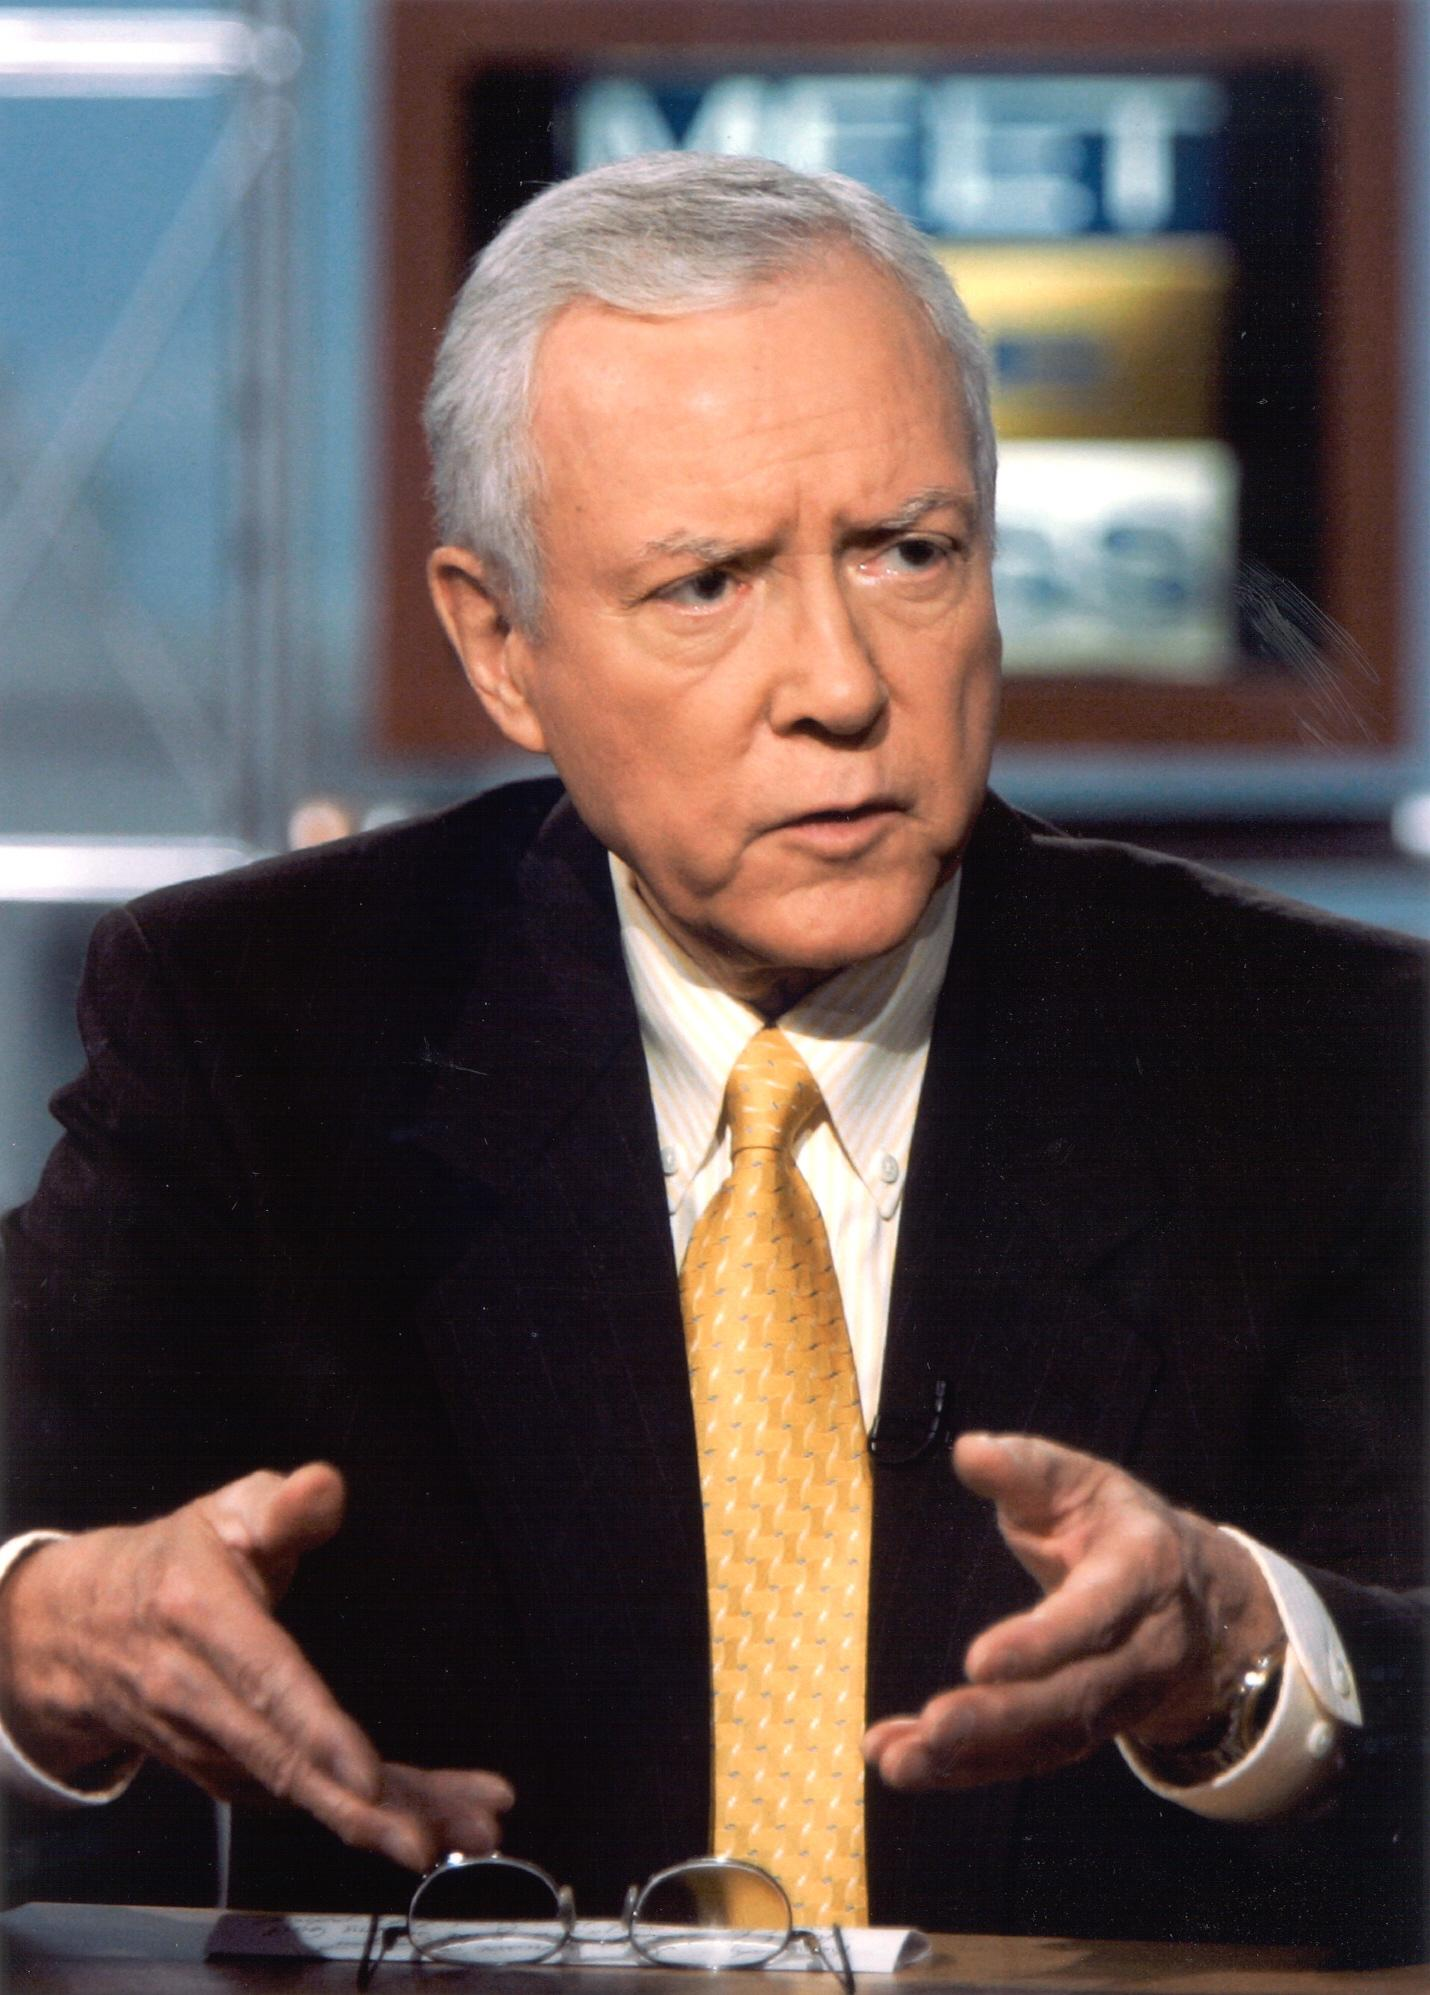 Sen. Hatch on Meet The Press (Photo: Courtesy Sen. Hatch's office)